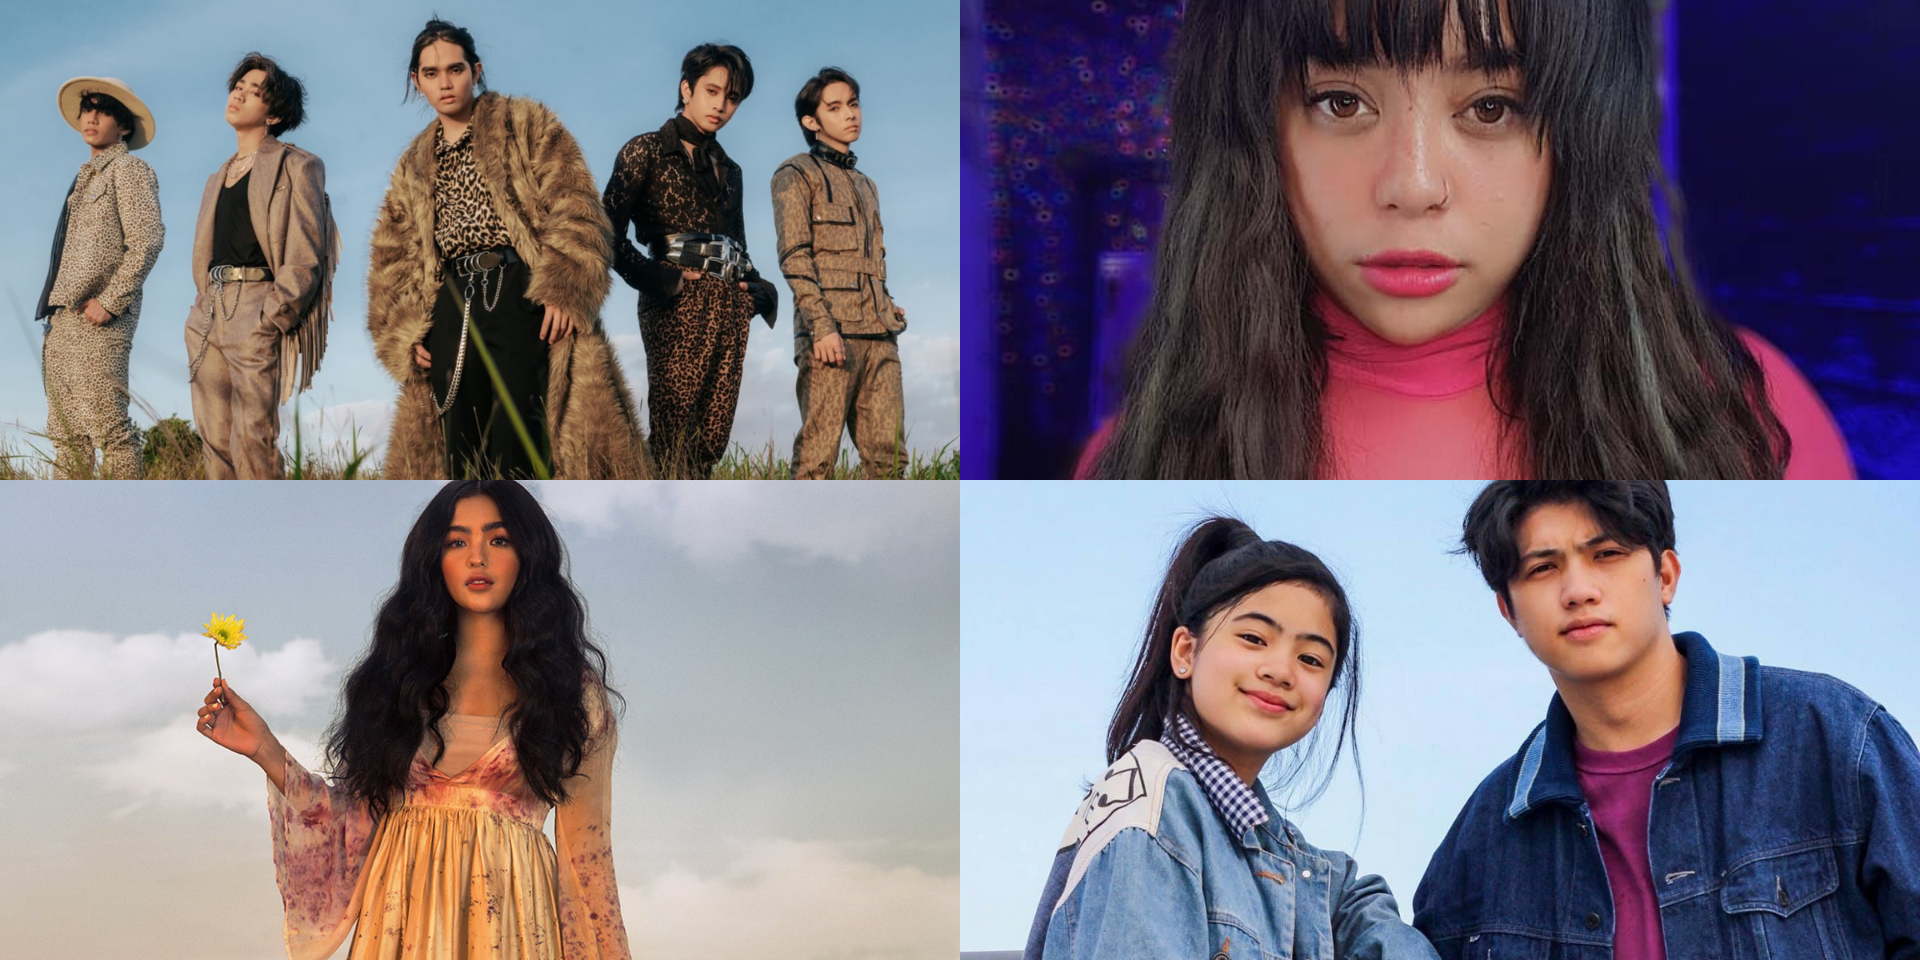 Here are the winners of the TikTok Awards Philippines 2021 – SB19, Ranz & Niana, Andrea Brillantes, Zendee, and more